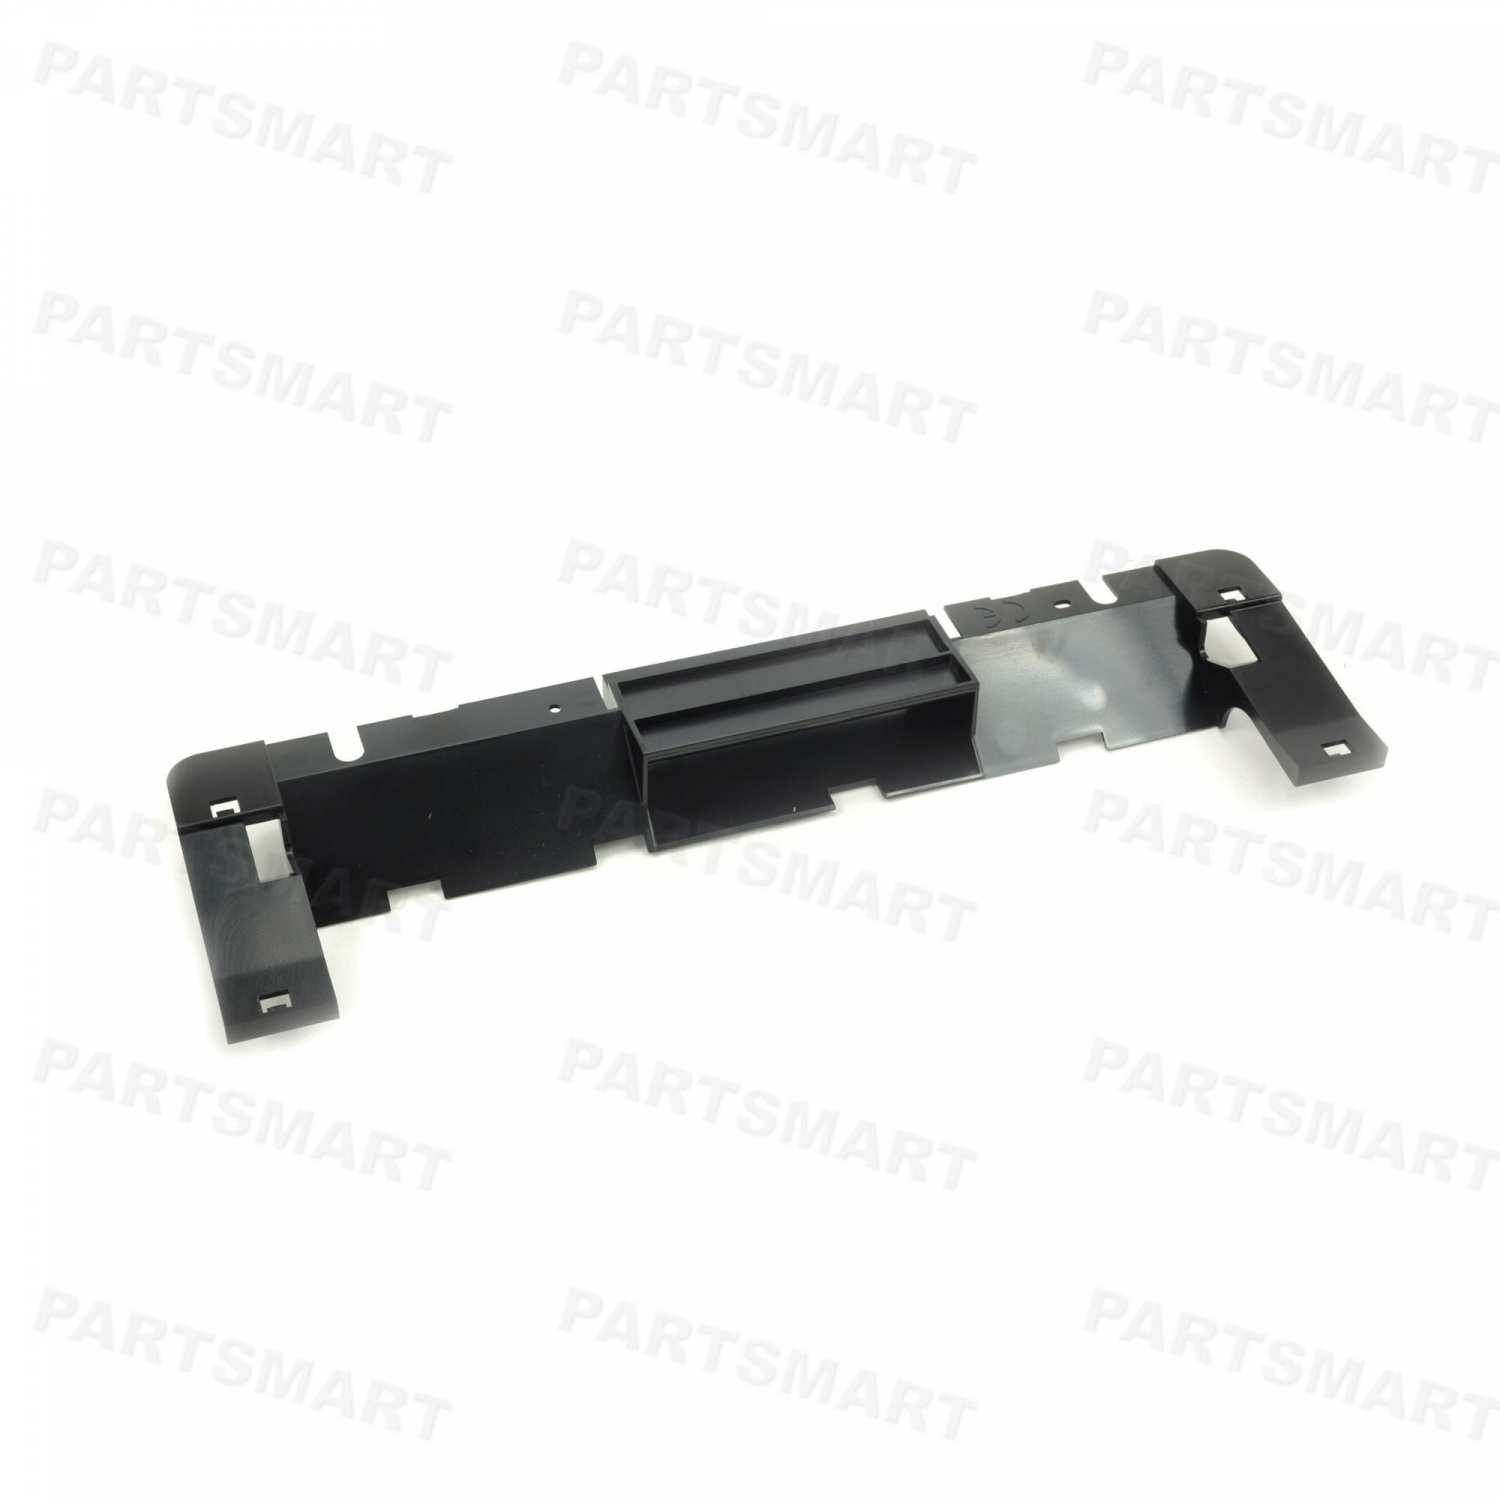 CVR-MS810-TOP Top Fuser Cover for Lexmark MS810, MS811, MS812